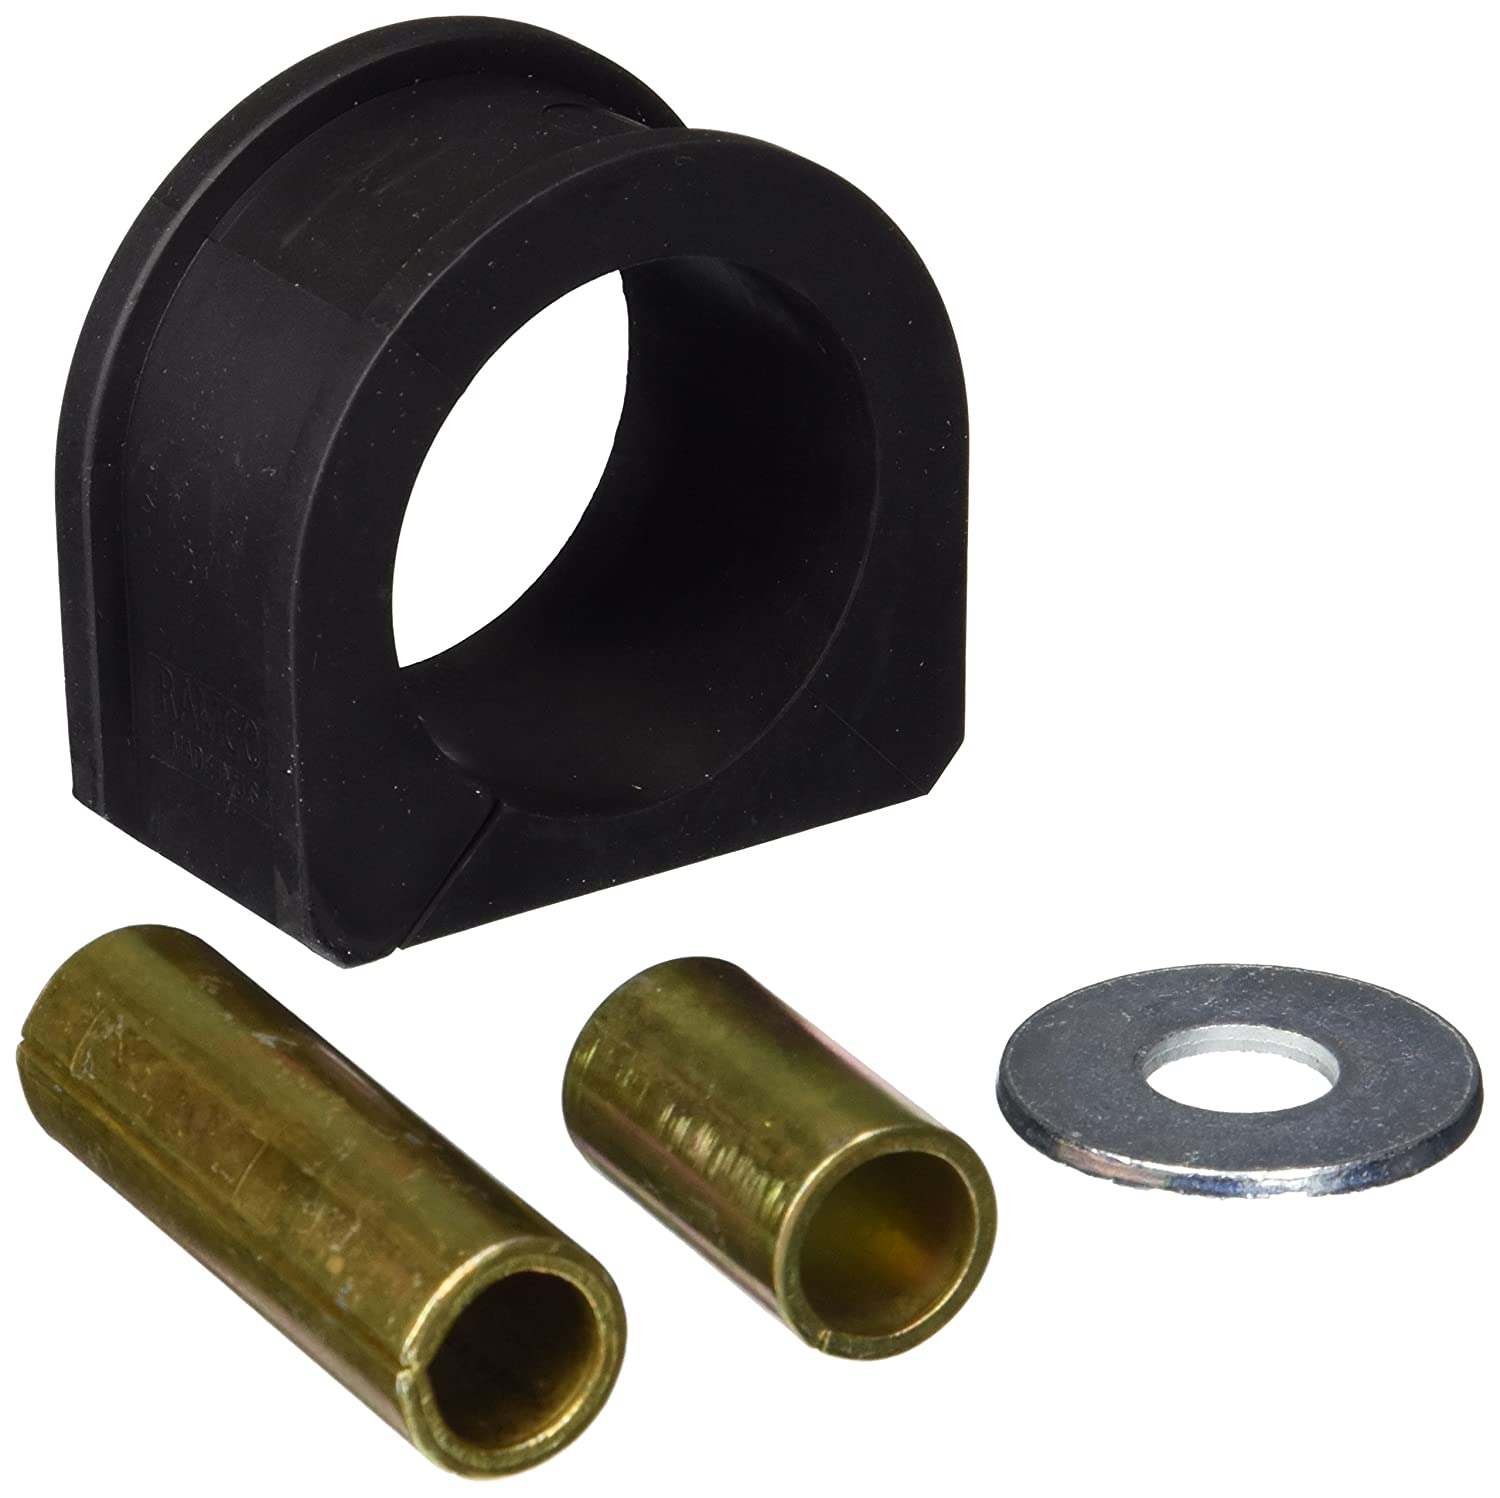 Moog K200208 Rack and Pinion Mount Bushing Federal Mogul